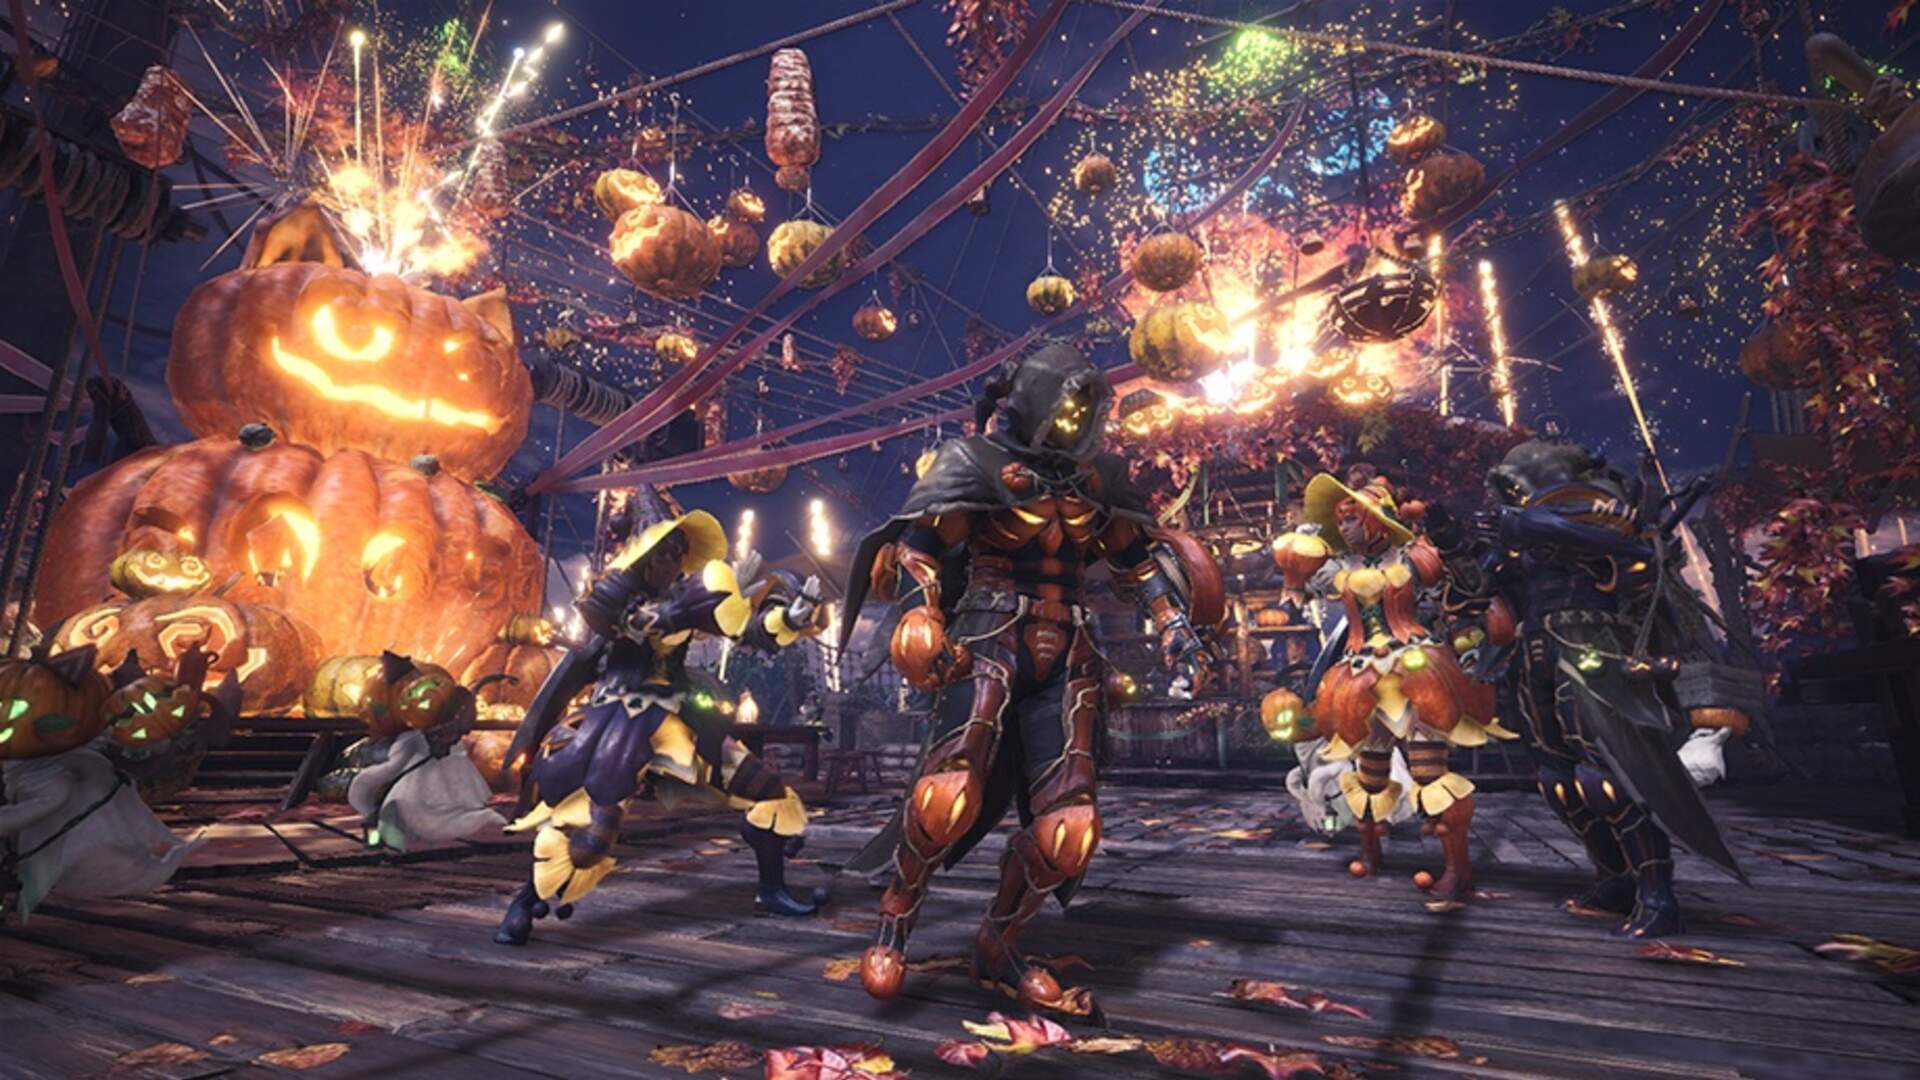 Monster Hunter: World Celebrates the Autumn Harvest Festival With Spooky Gear and Special Bounties